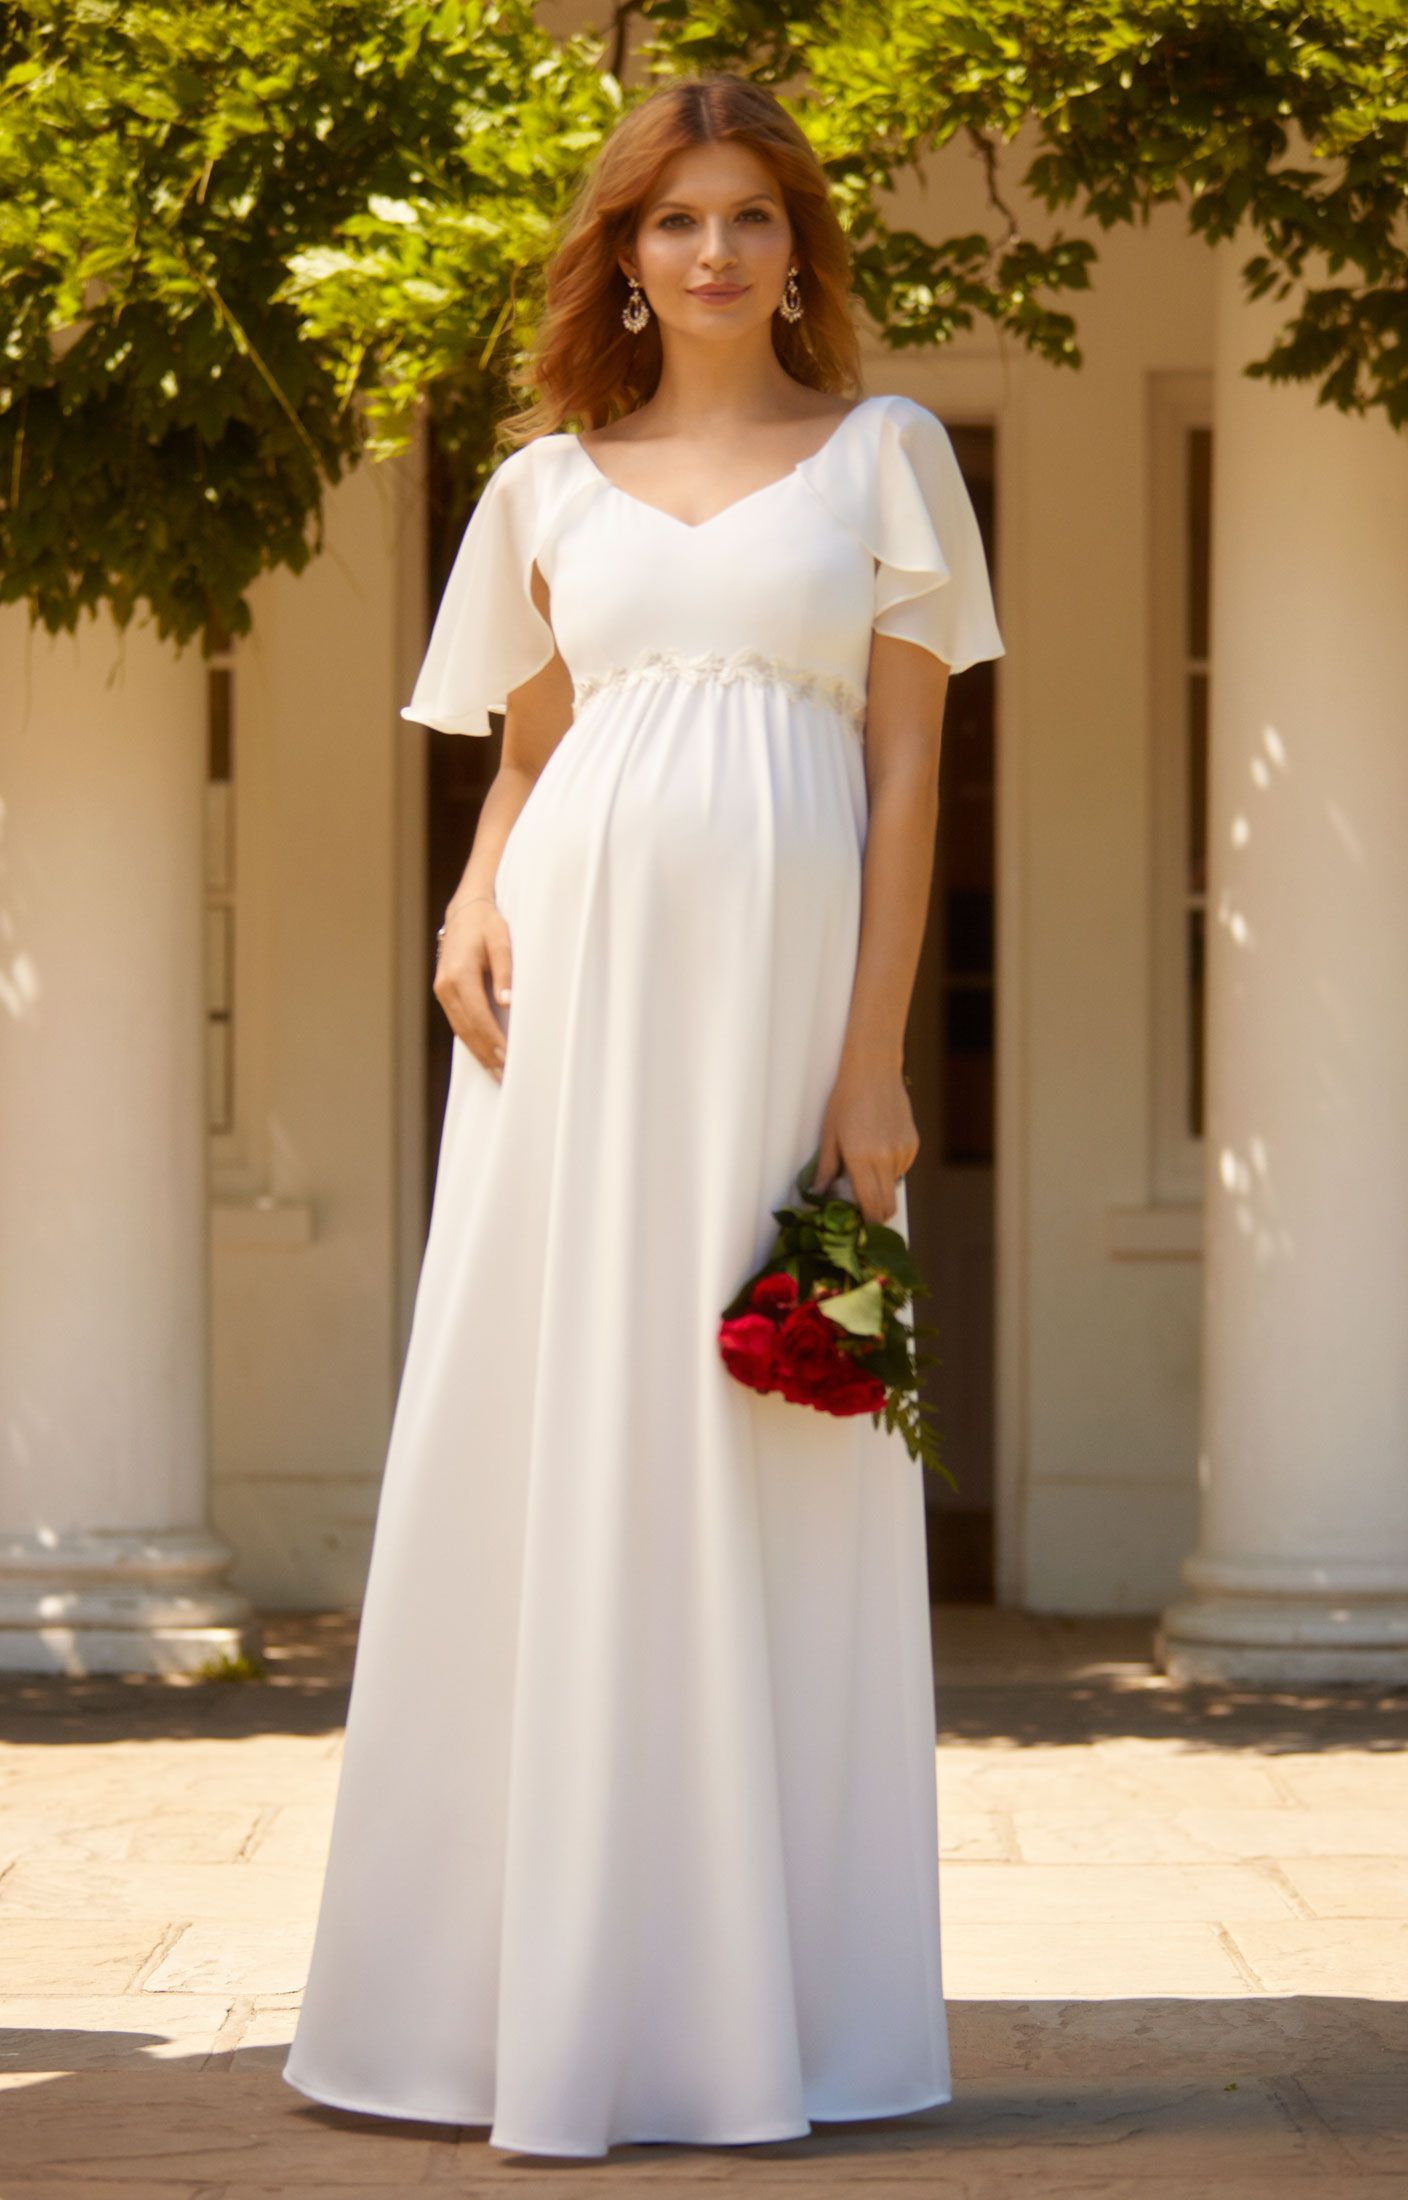 Our vintage Everly maternity gown evokes the effortless glamour of ...